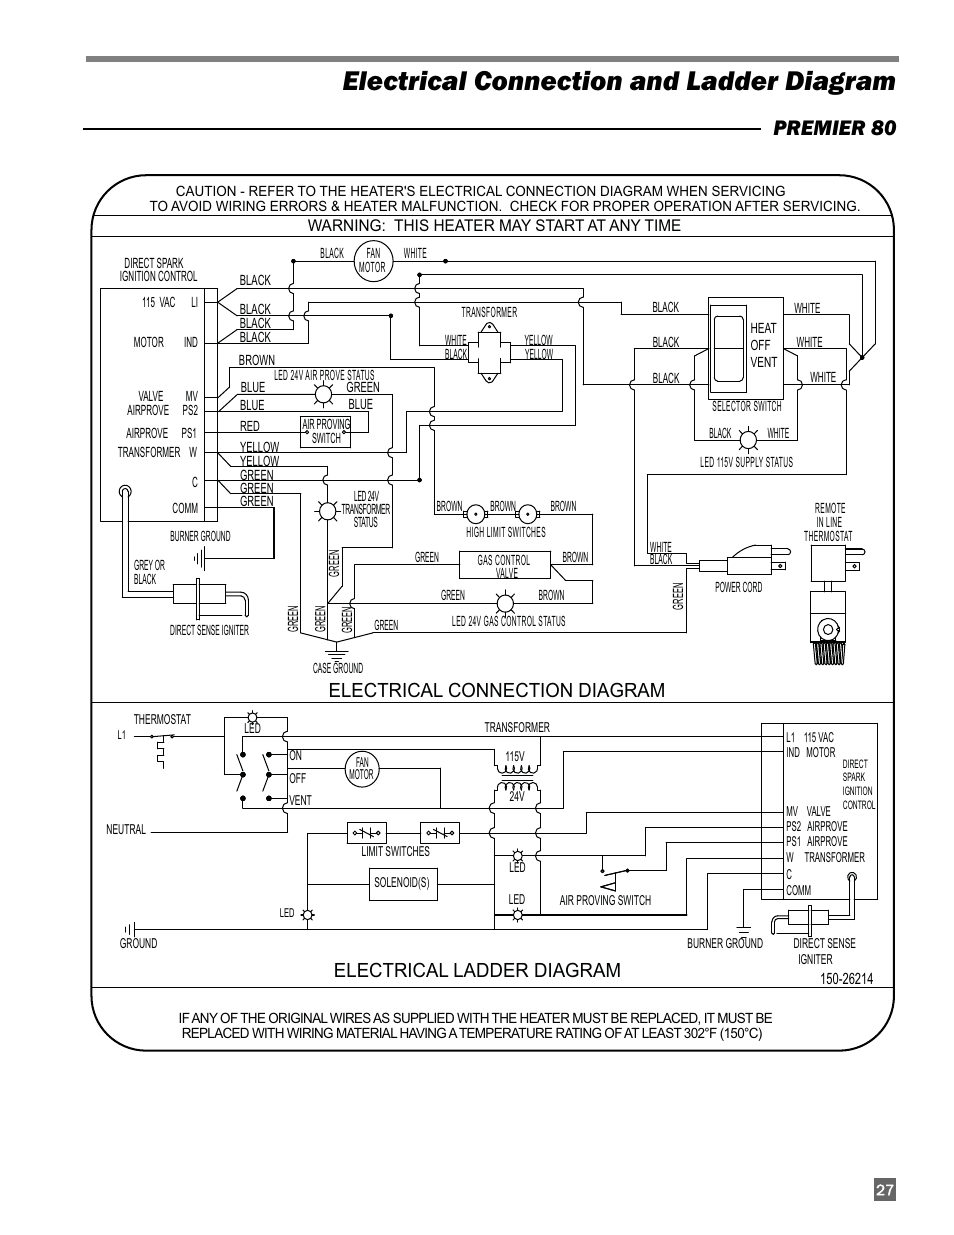 medium resolution of electrical connection and ladder diagram premier 80 electrical connection diagram l b white 170 premier user manual page 27 34